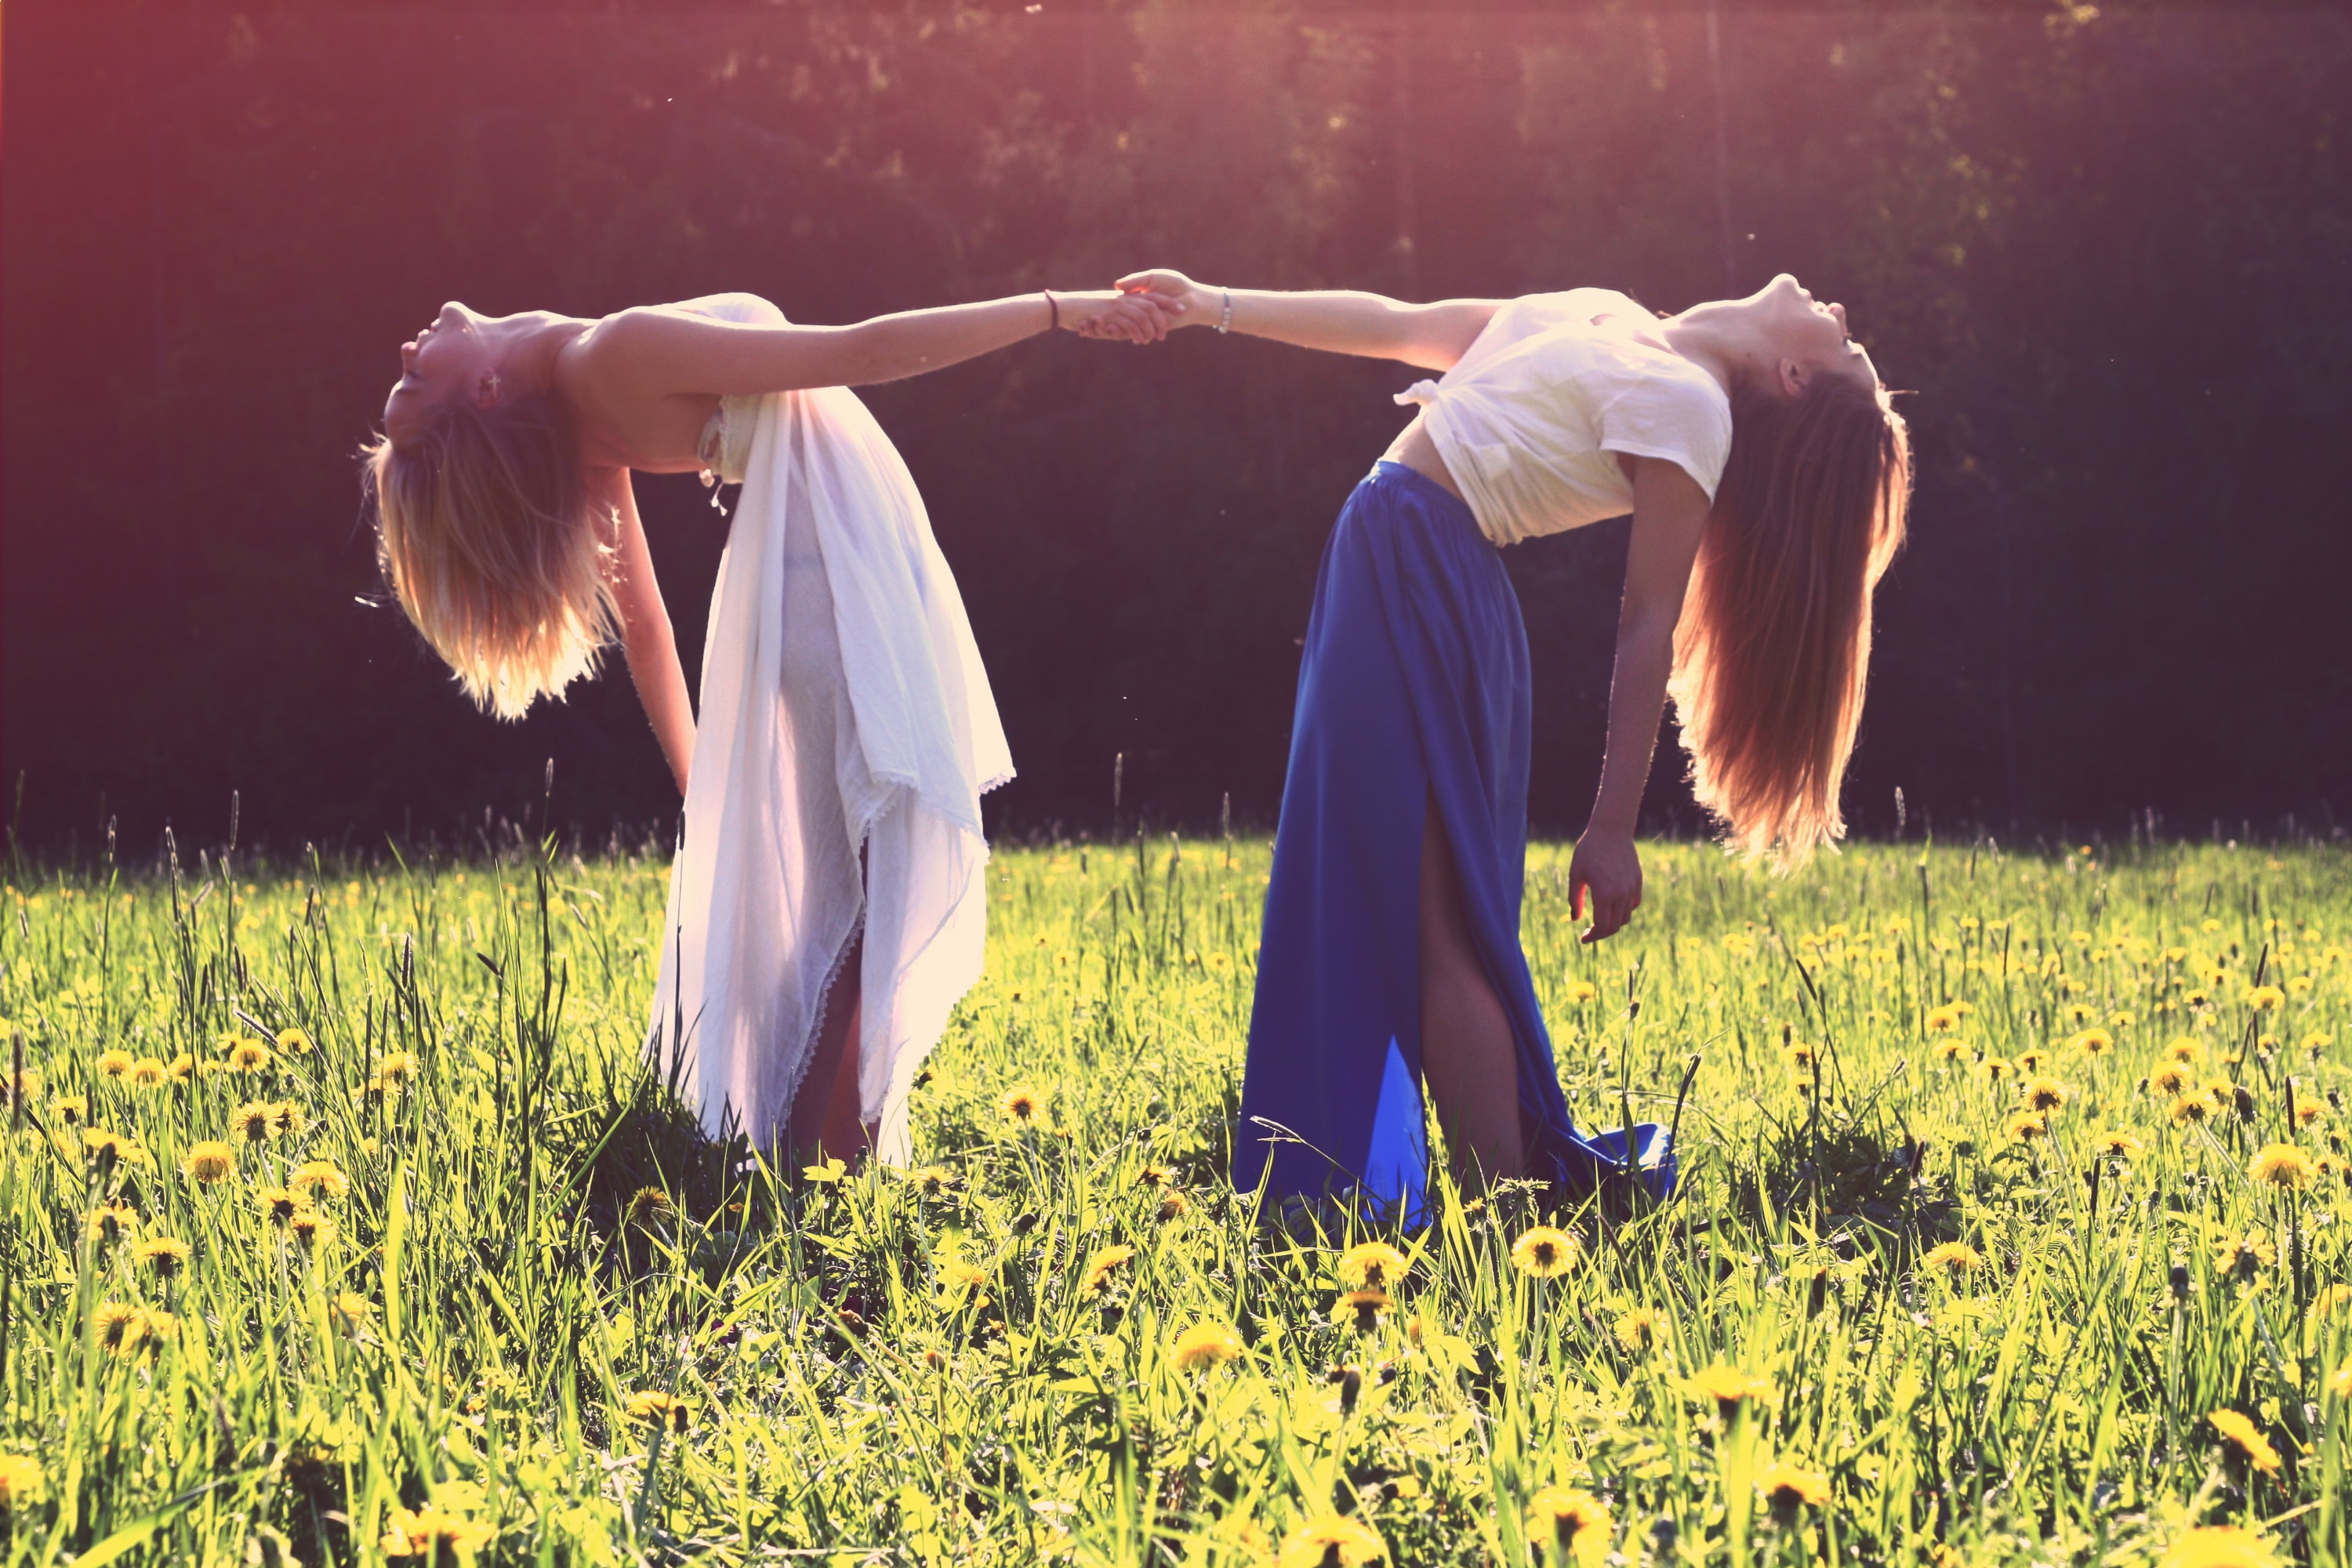 Two women in dresses arching back while holding each other hands in a green meadow